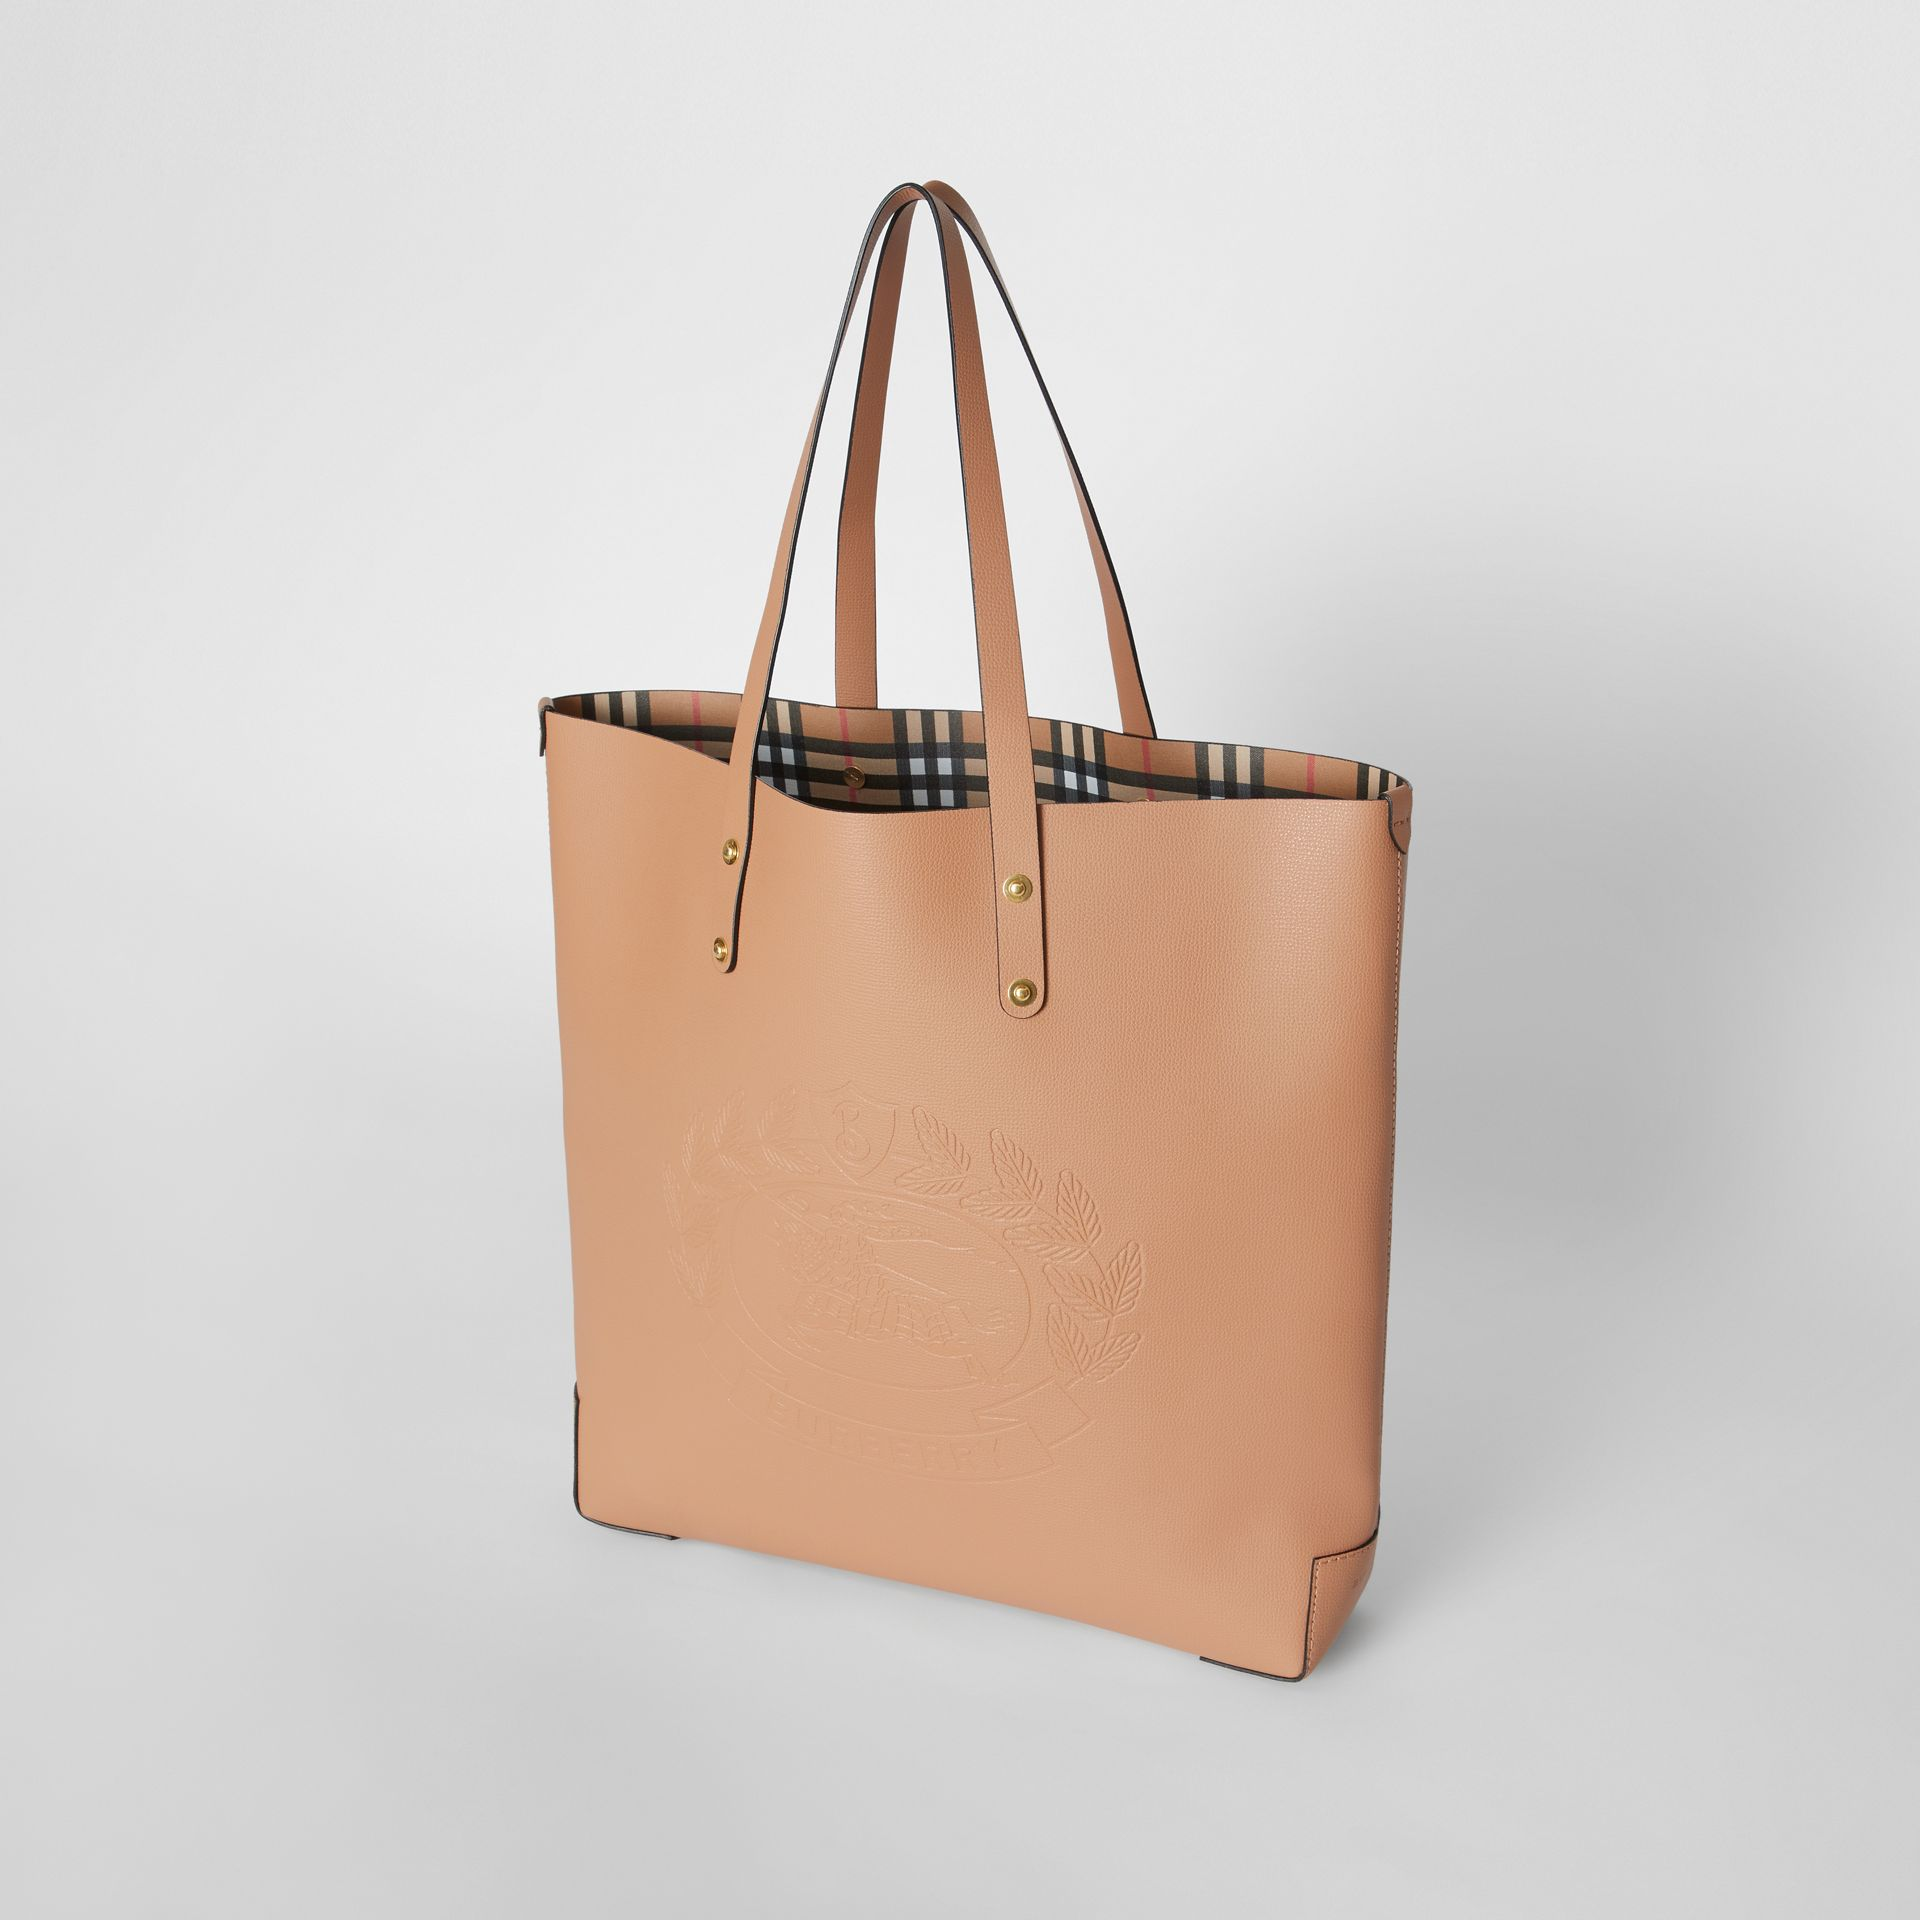 Embossed Crest Leather Tote in Light Camel - Women | Burberry United Kingdom - gallery image 2